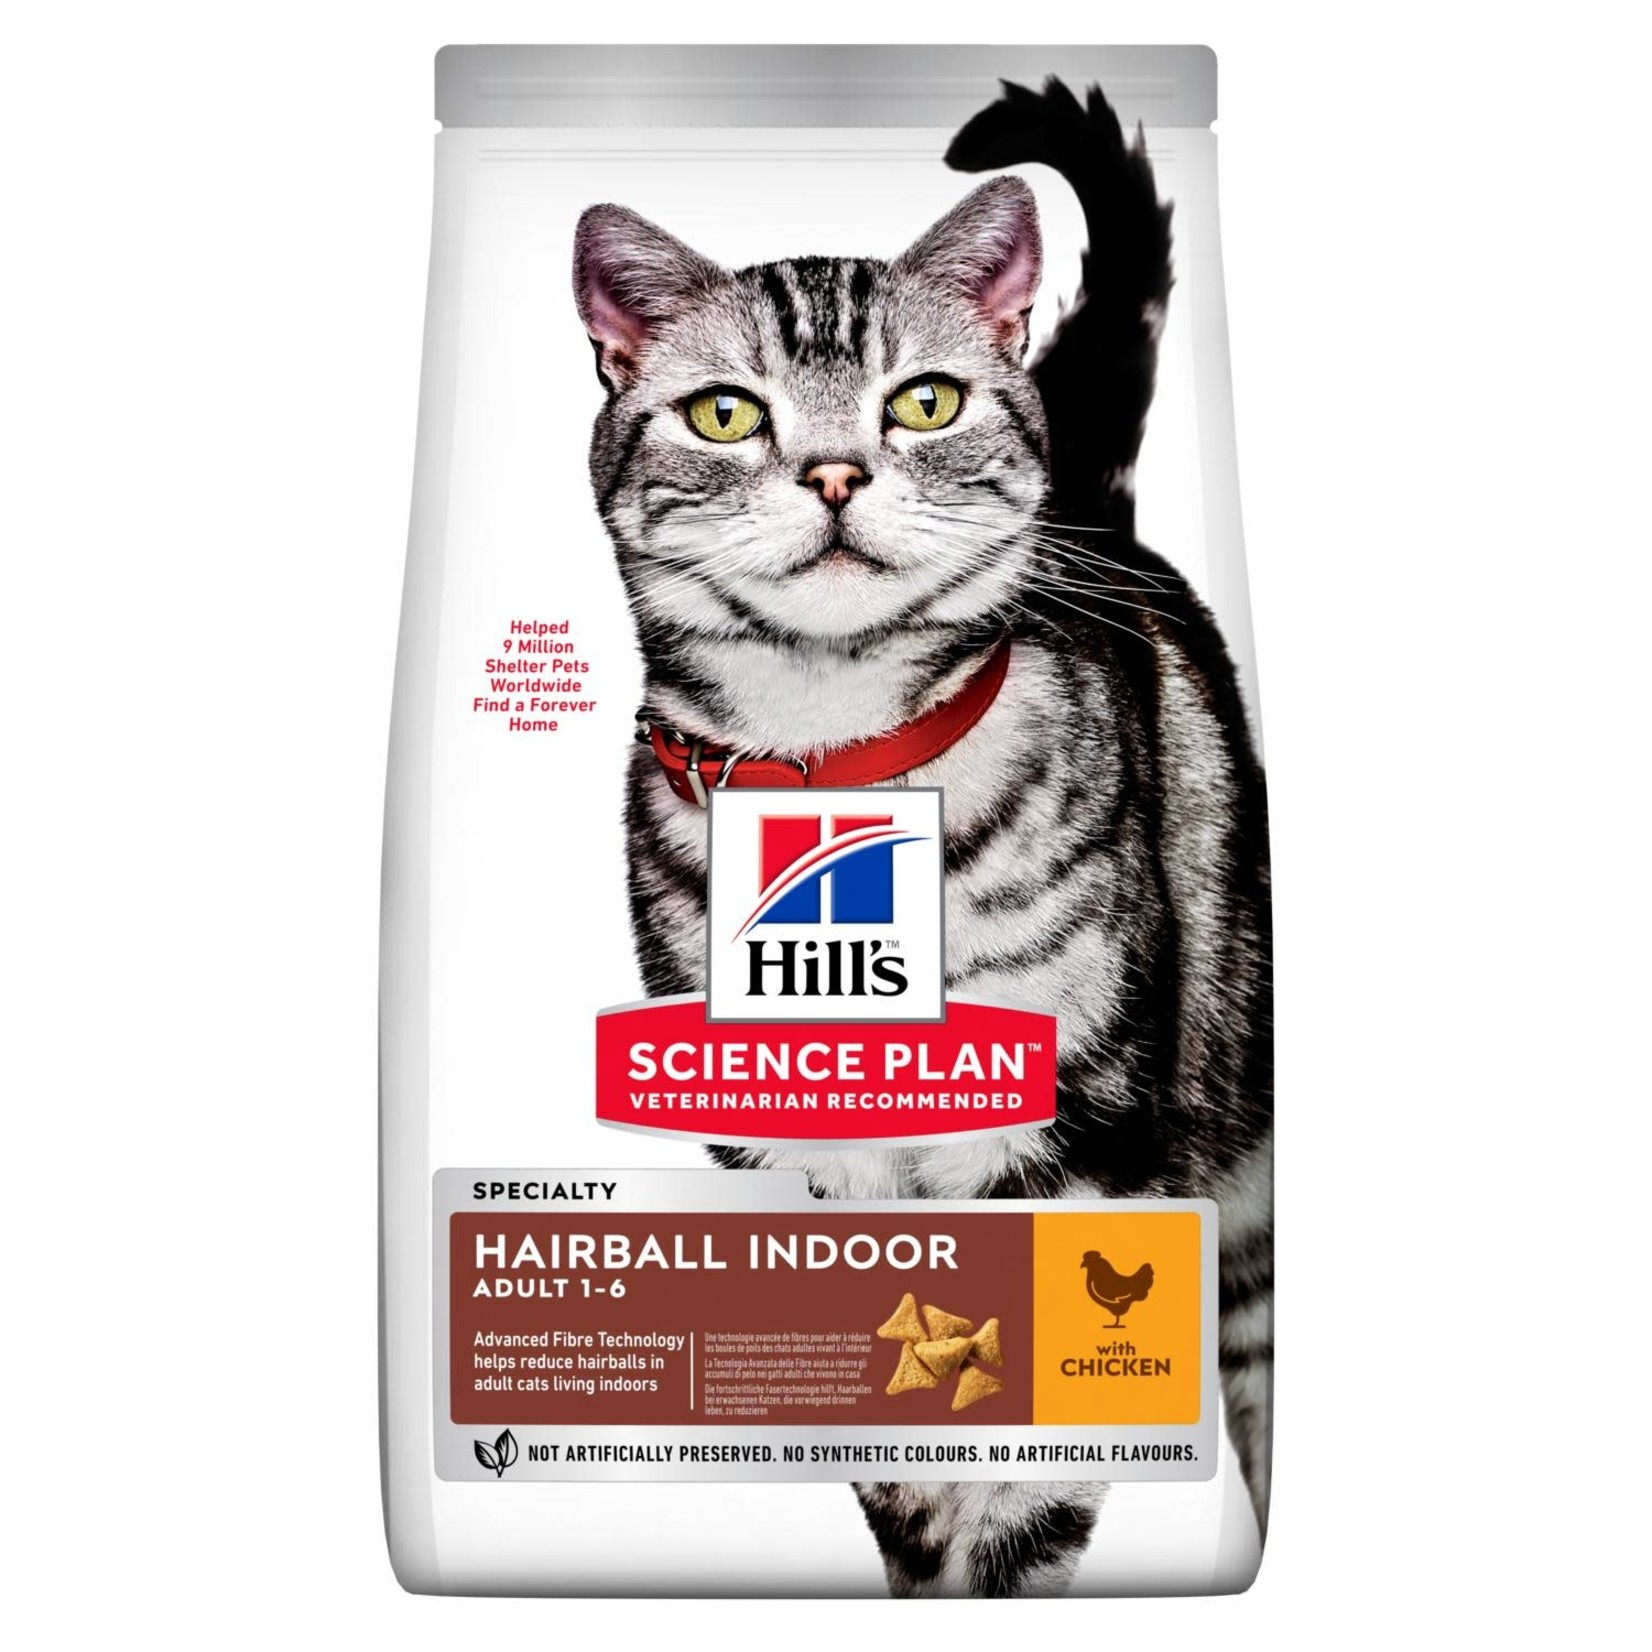 Hill's Science Plan Adult 1-6 Hairball Indoor Cat Dry Food, Chicken